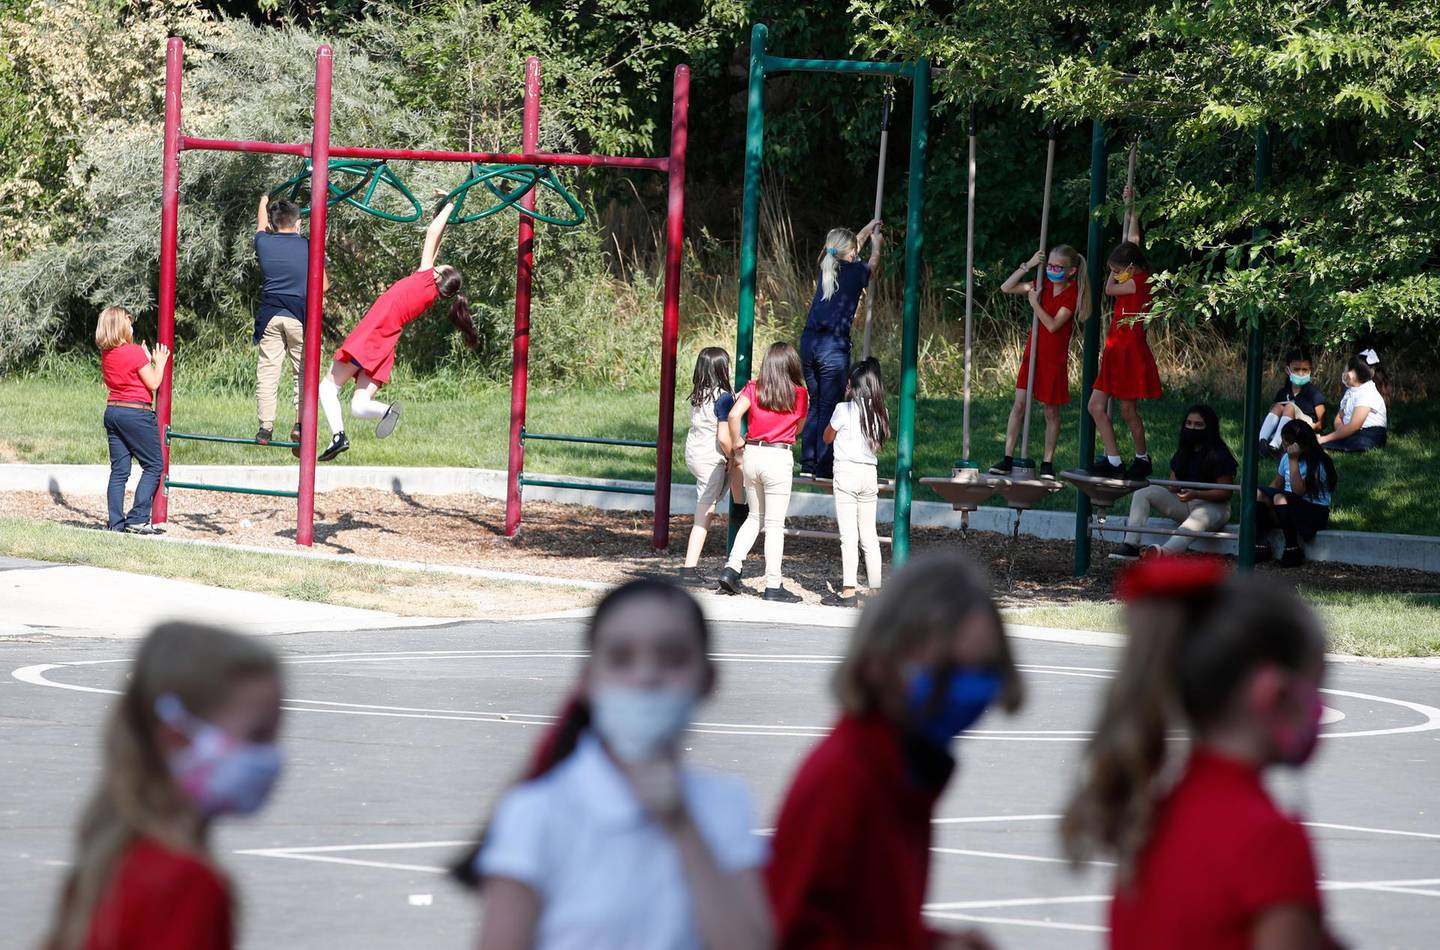 Students wearing protective masks play outside during recess at a public charter school in Provo, Utah, U.S., on Thursday, Aug. 20, 2020. Students and staff in Utah who don't wear a mask in K-12 schools in accordance with the  Governor Gary Herbert's mandate can be charged with a misdemeanor, reported the Salt Lake Tribune. George Frey/Bloomberg